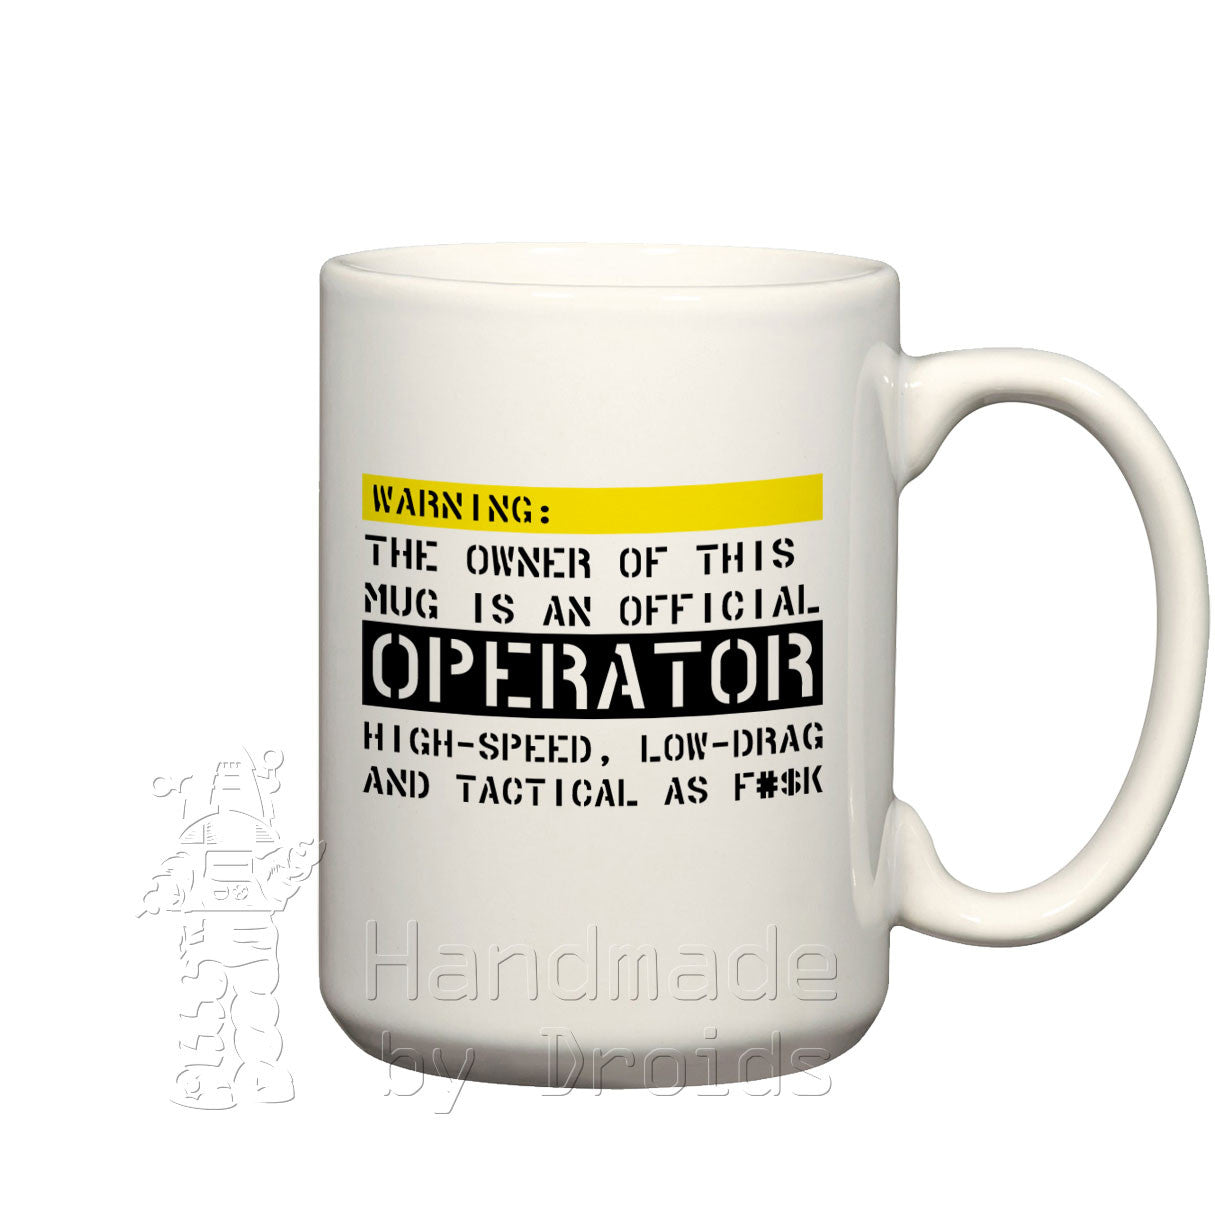 OPERATOR (15oz) Coffee Mug